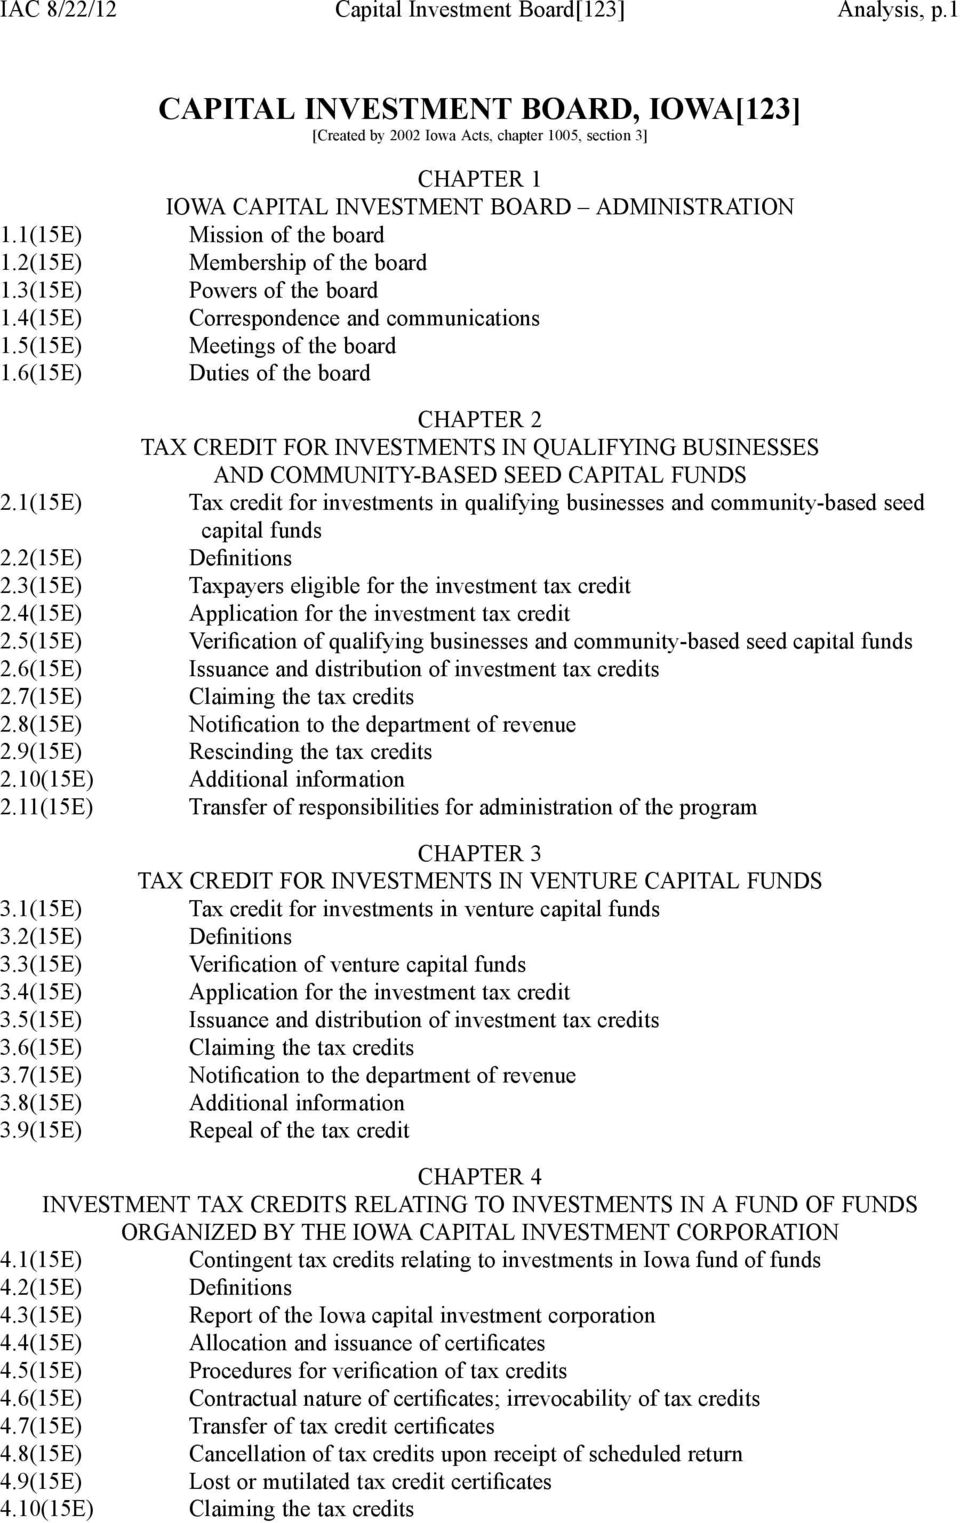 9(15E) CHAPTER 1 IOWA CAPITAL INVESTMENT BOARD ADMINISTRATION Mission of the board Membership of the board Powers of the board Correspondence and communications Meetings of the board Duties of the